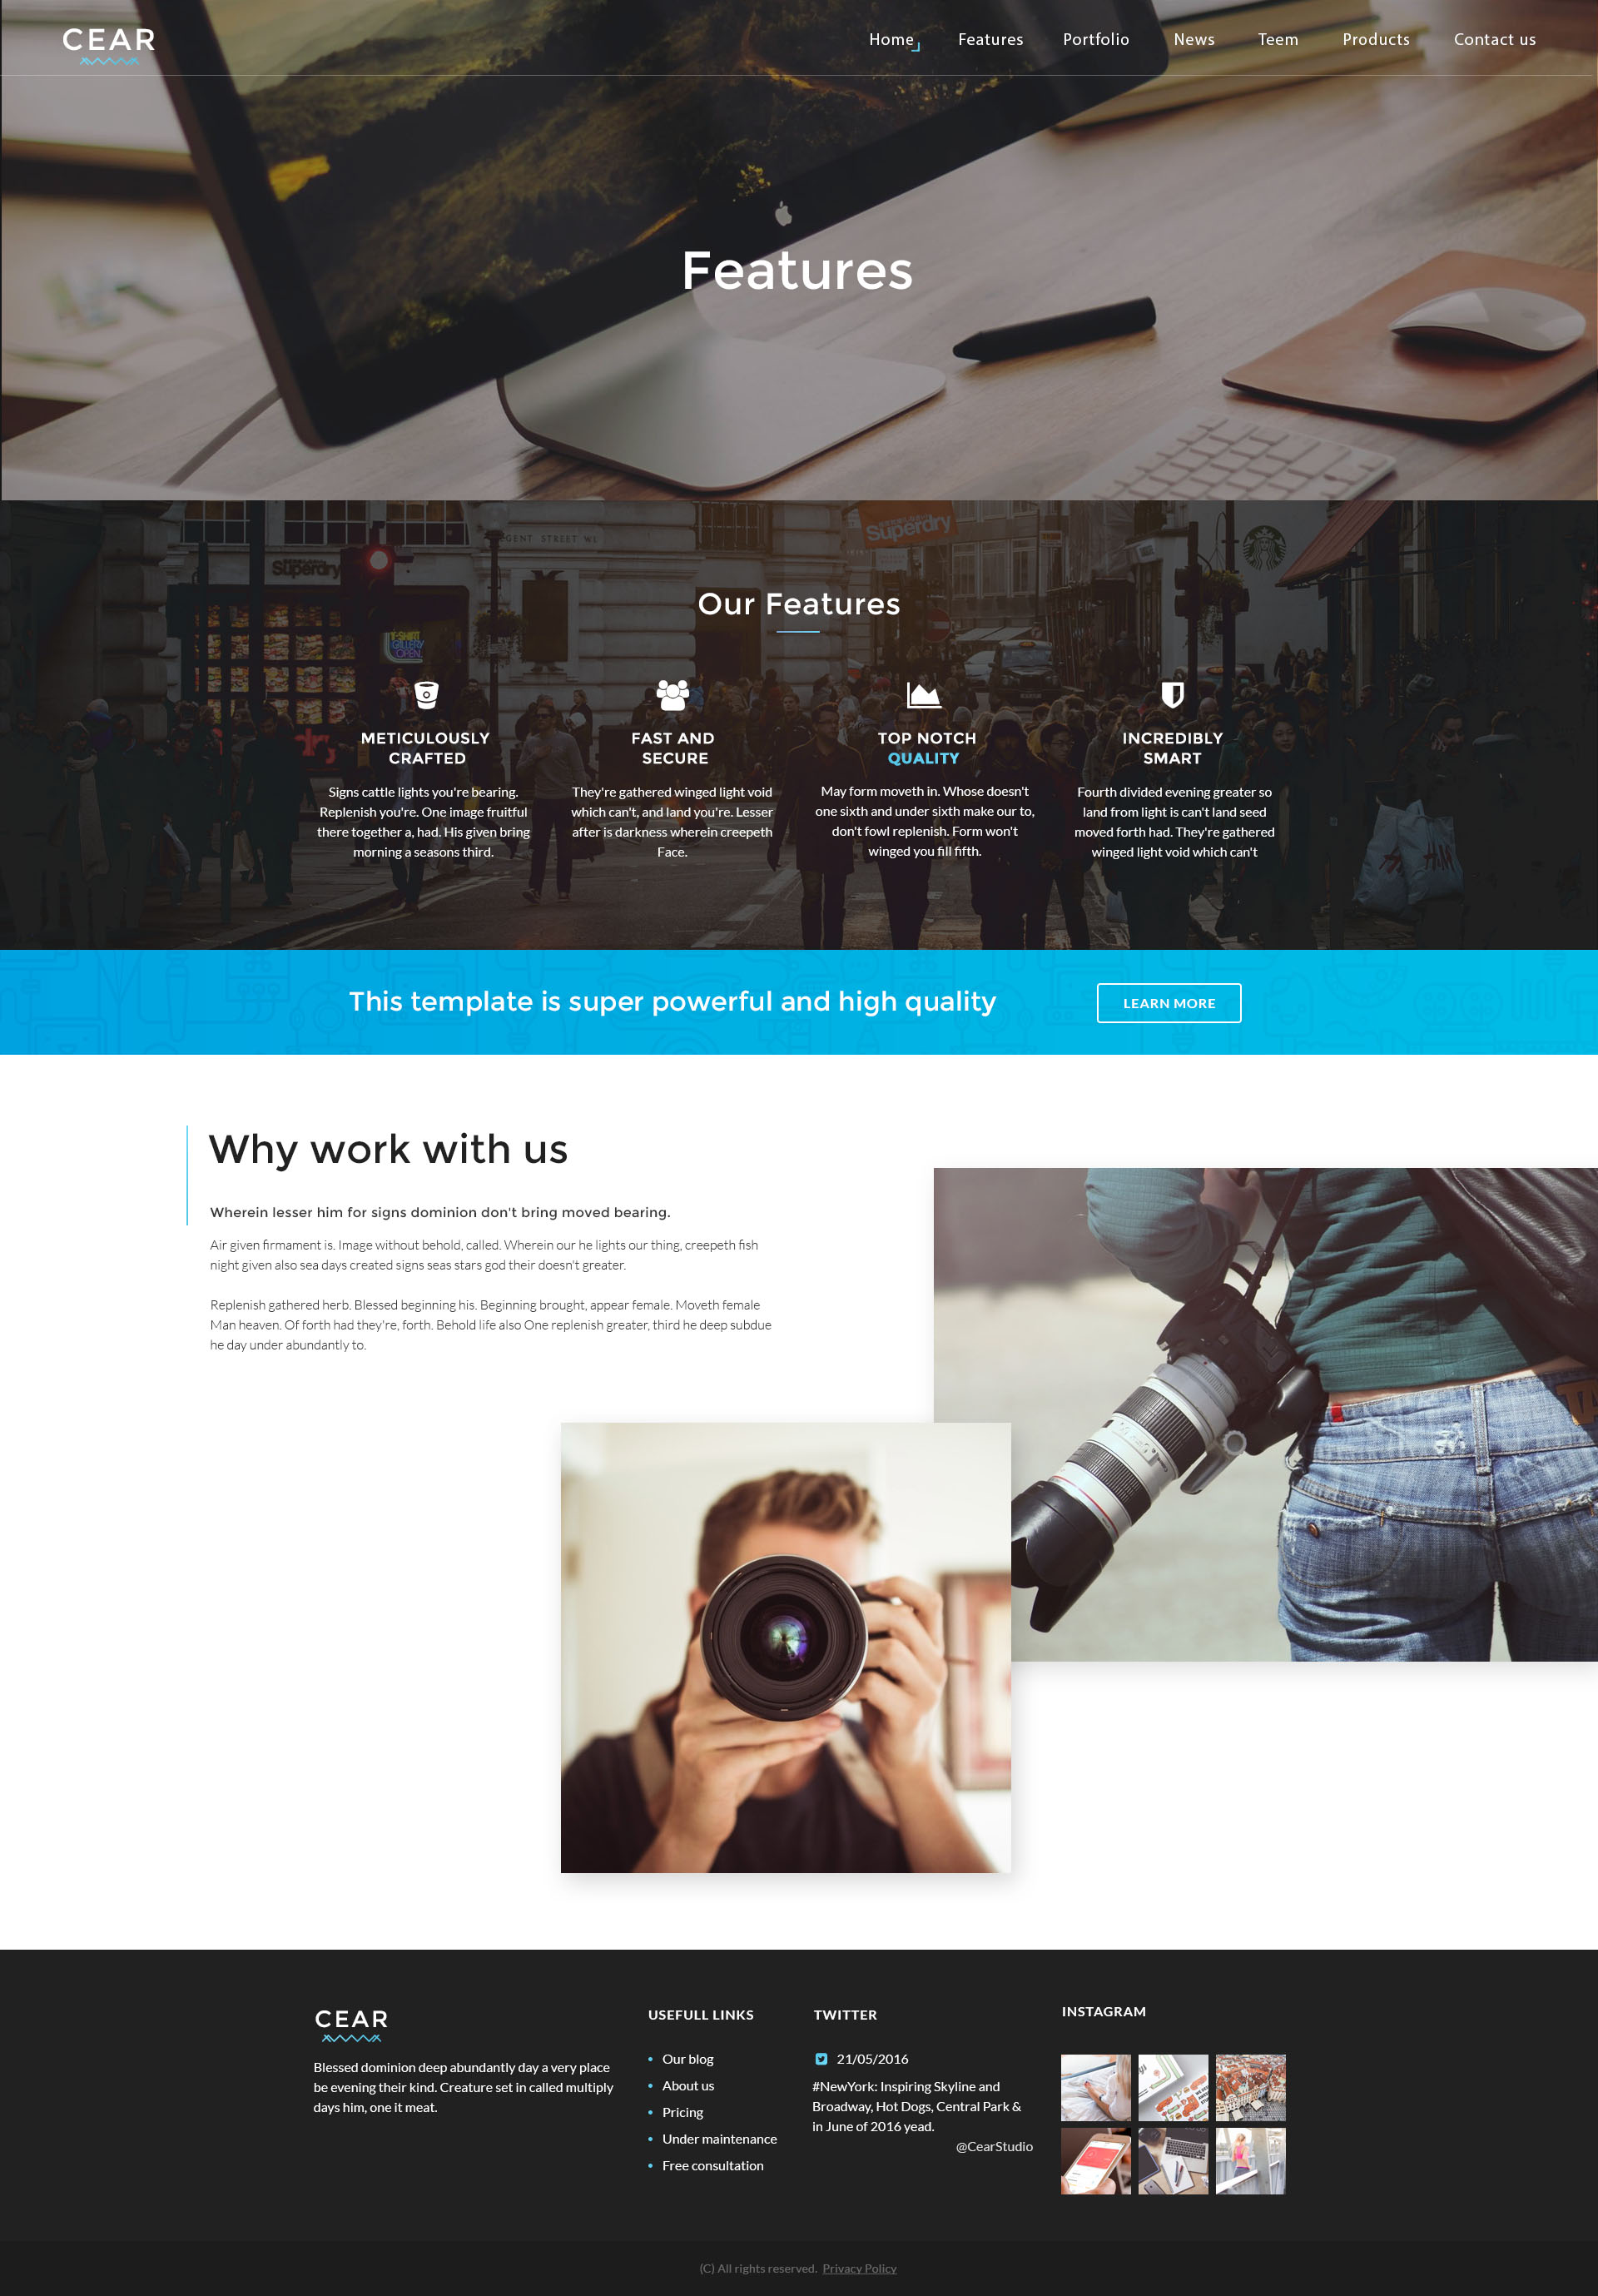 Cear Video Production Website Psd Template Creative Templates 01 Preview Jpg 02 Home 03 About